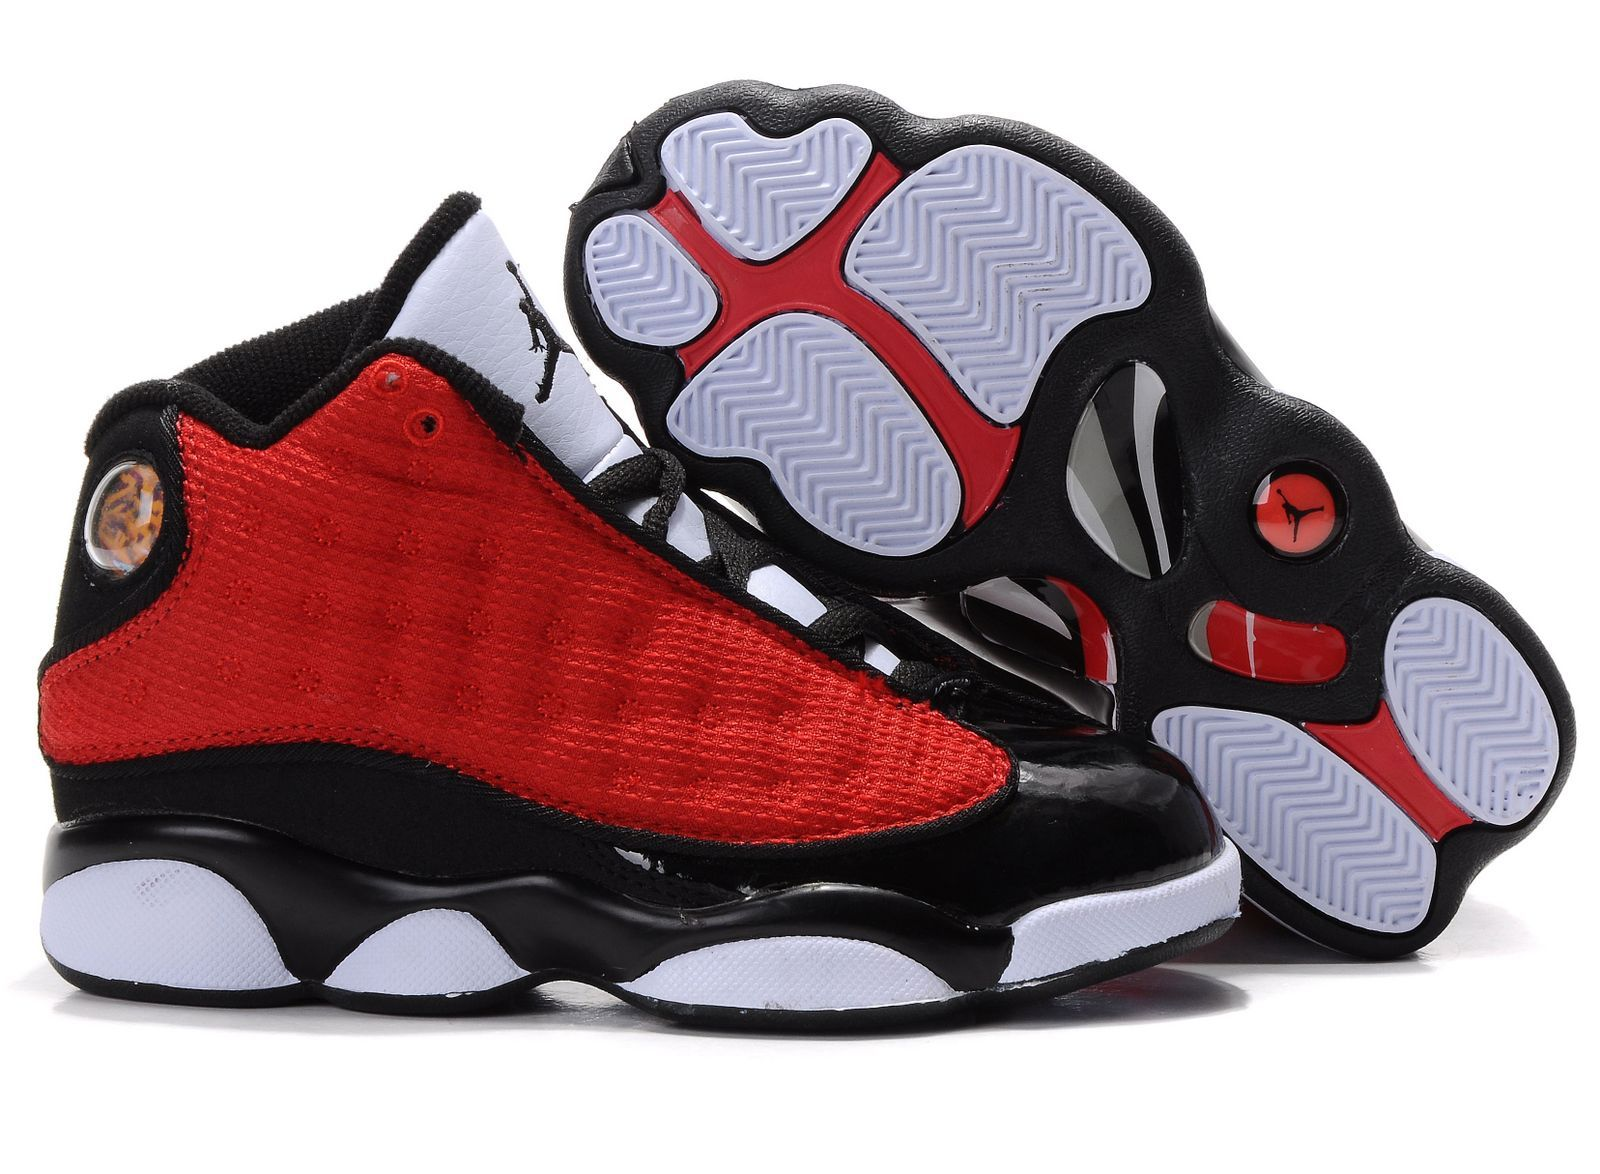 online retailer 33c46 89930 Air Jordan For Kids   Air Jordan 6 Rings Kids Red Black White Shoe